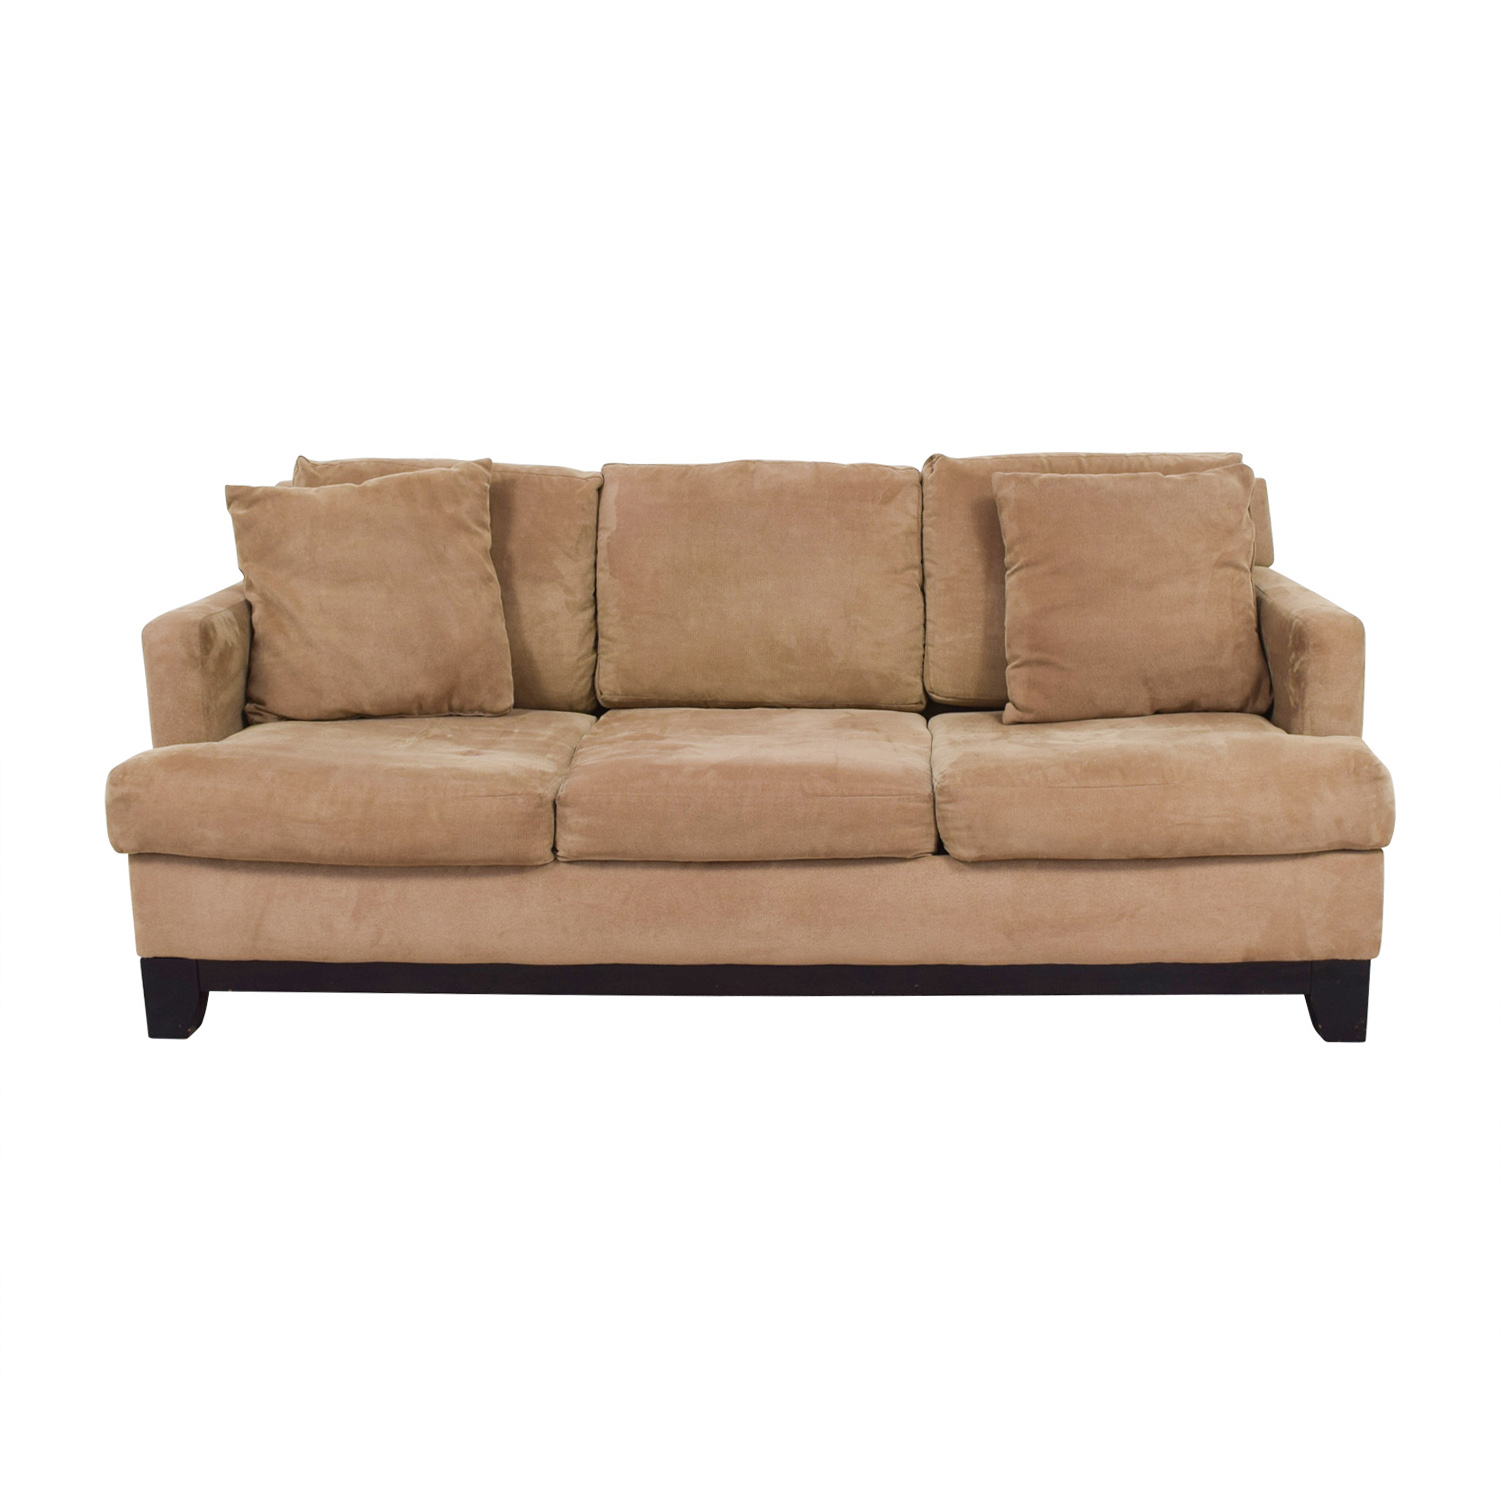 shop Macys Light Brown Microfiber Three-Cushion Sofa Macys Sofas